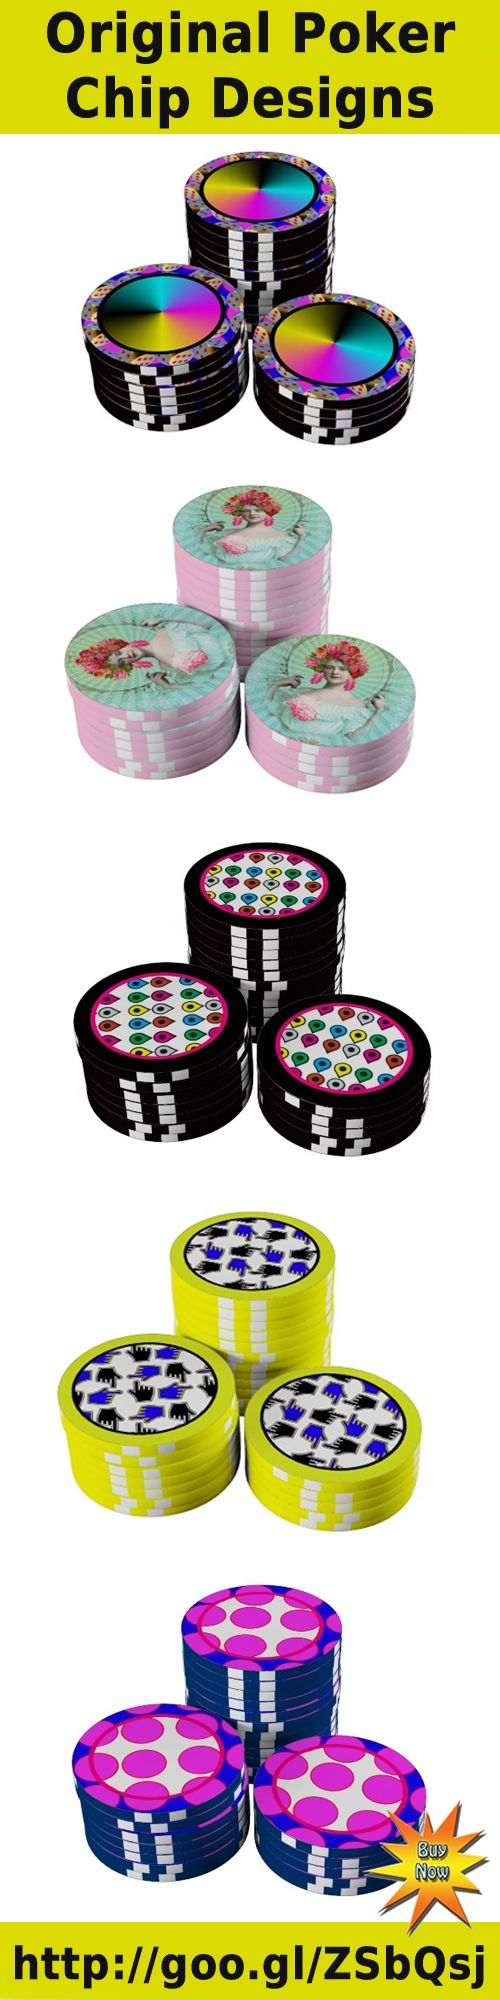 Design your own t shirt zazzle - Zazzle T Shirt Design Template Original Poker Chip Design Templates Just Easily Add Your Own Download